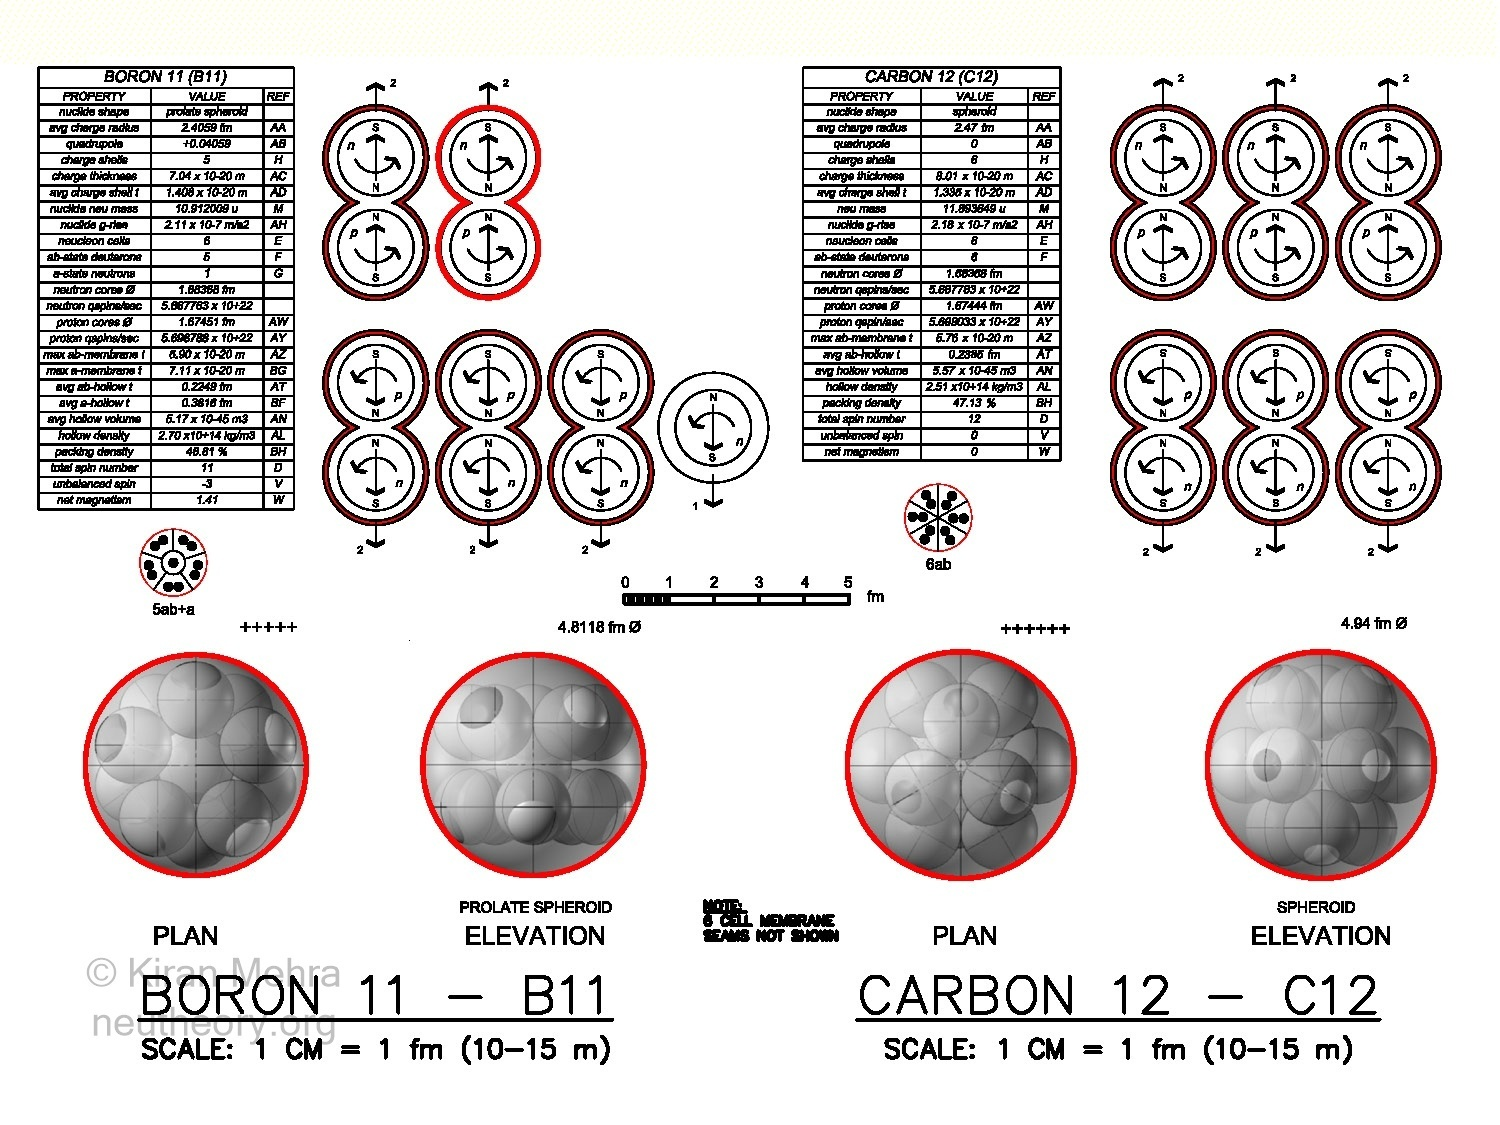 3D graphic images of deuteron and neutron cells clustering to form boron-11 and carbon-12 nuclides